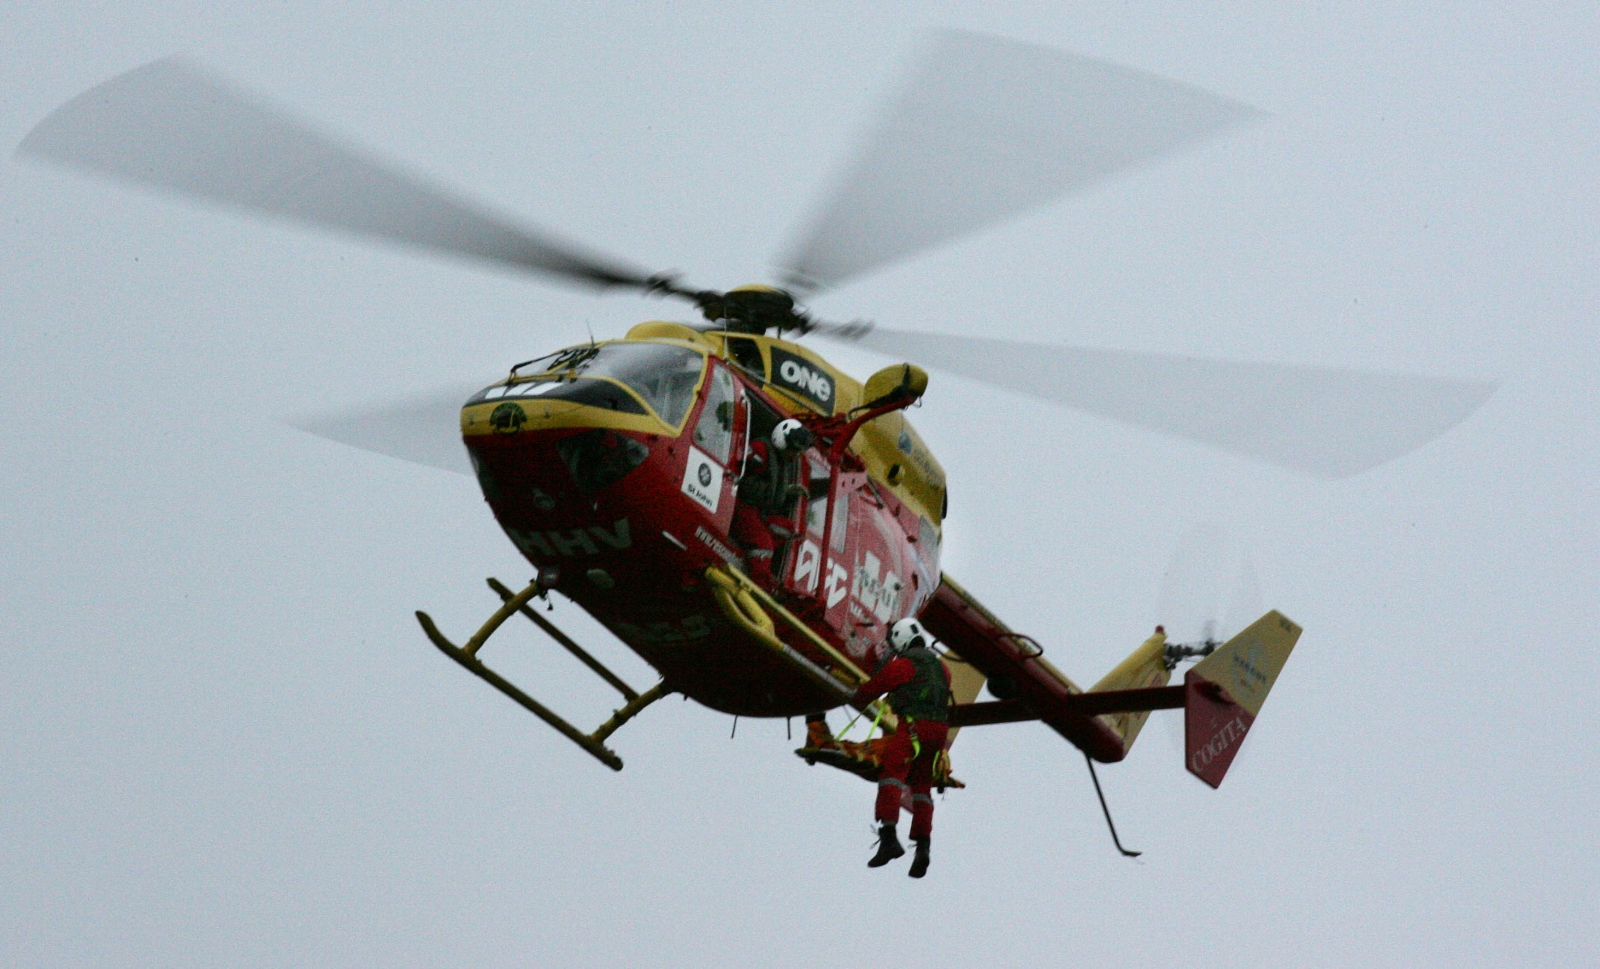 New Zealand rescue helicopter